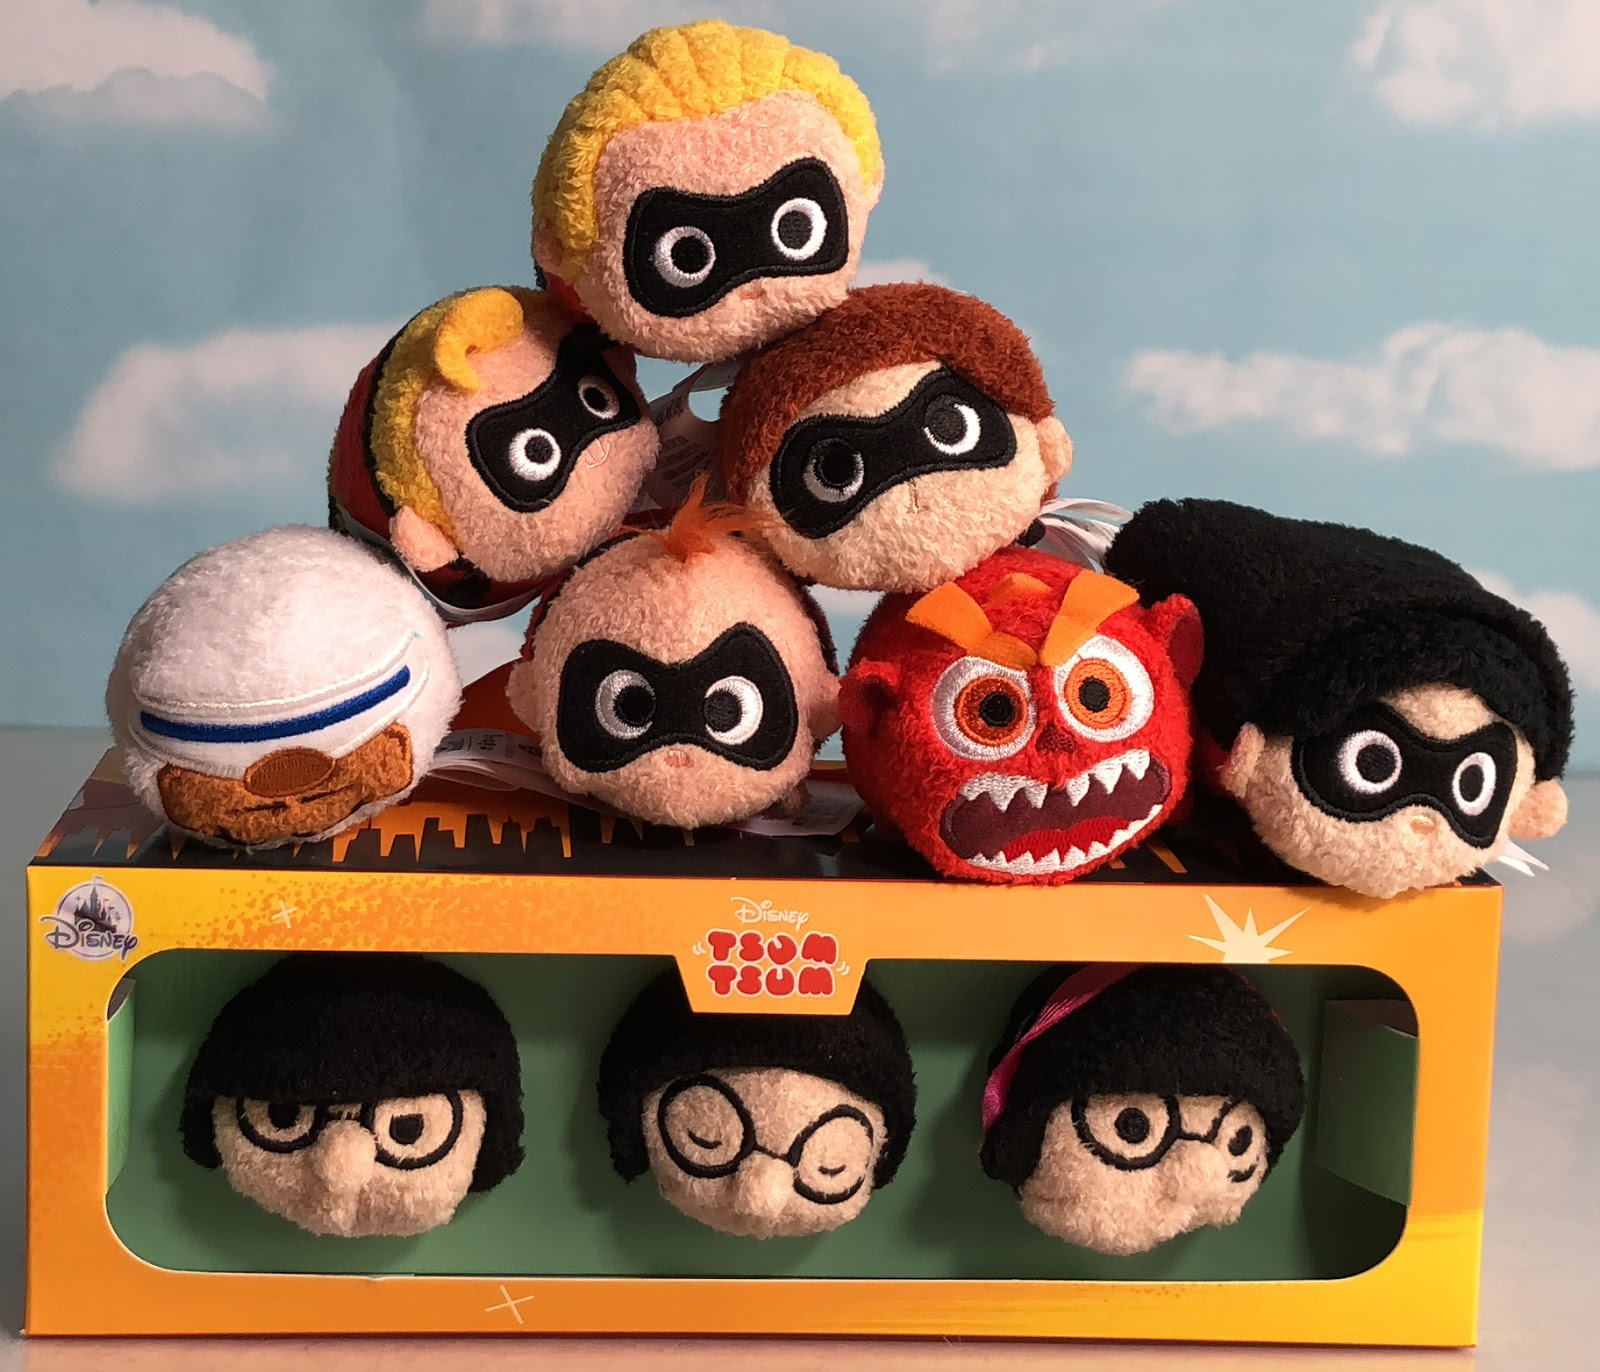 Best Incredibles Toys Reviewed : Tubey toys video and toy review edna mode tsum